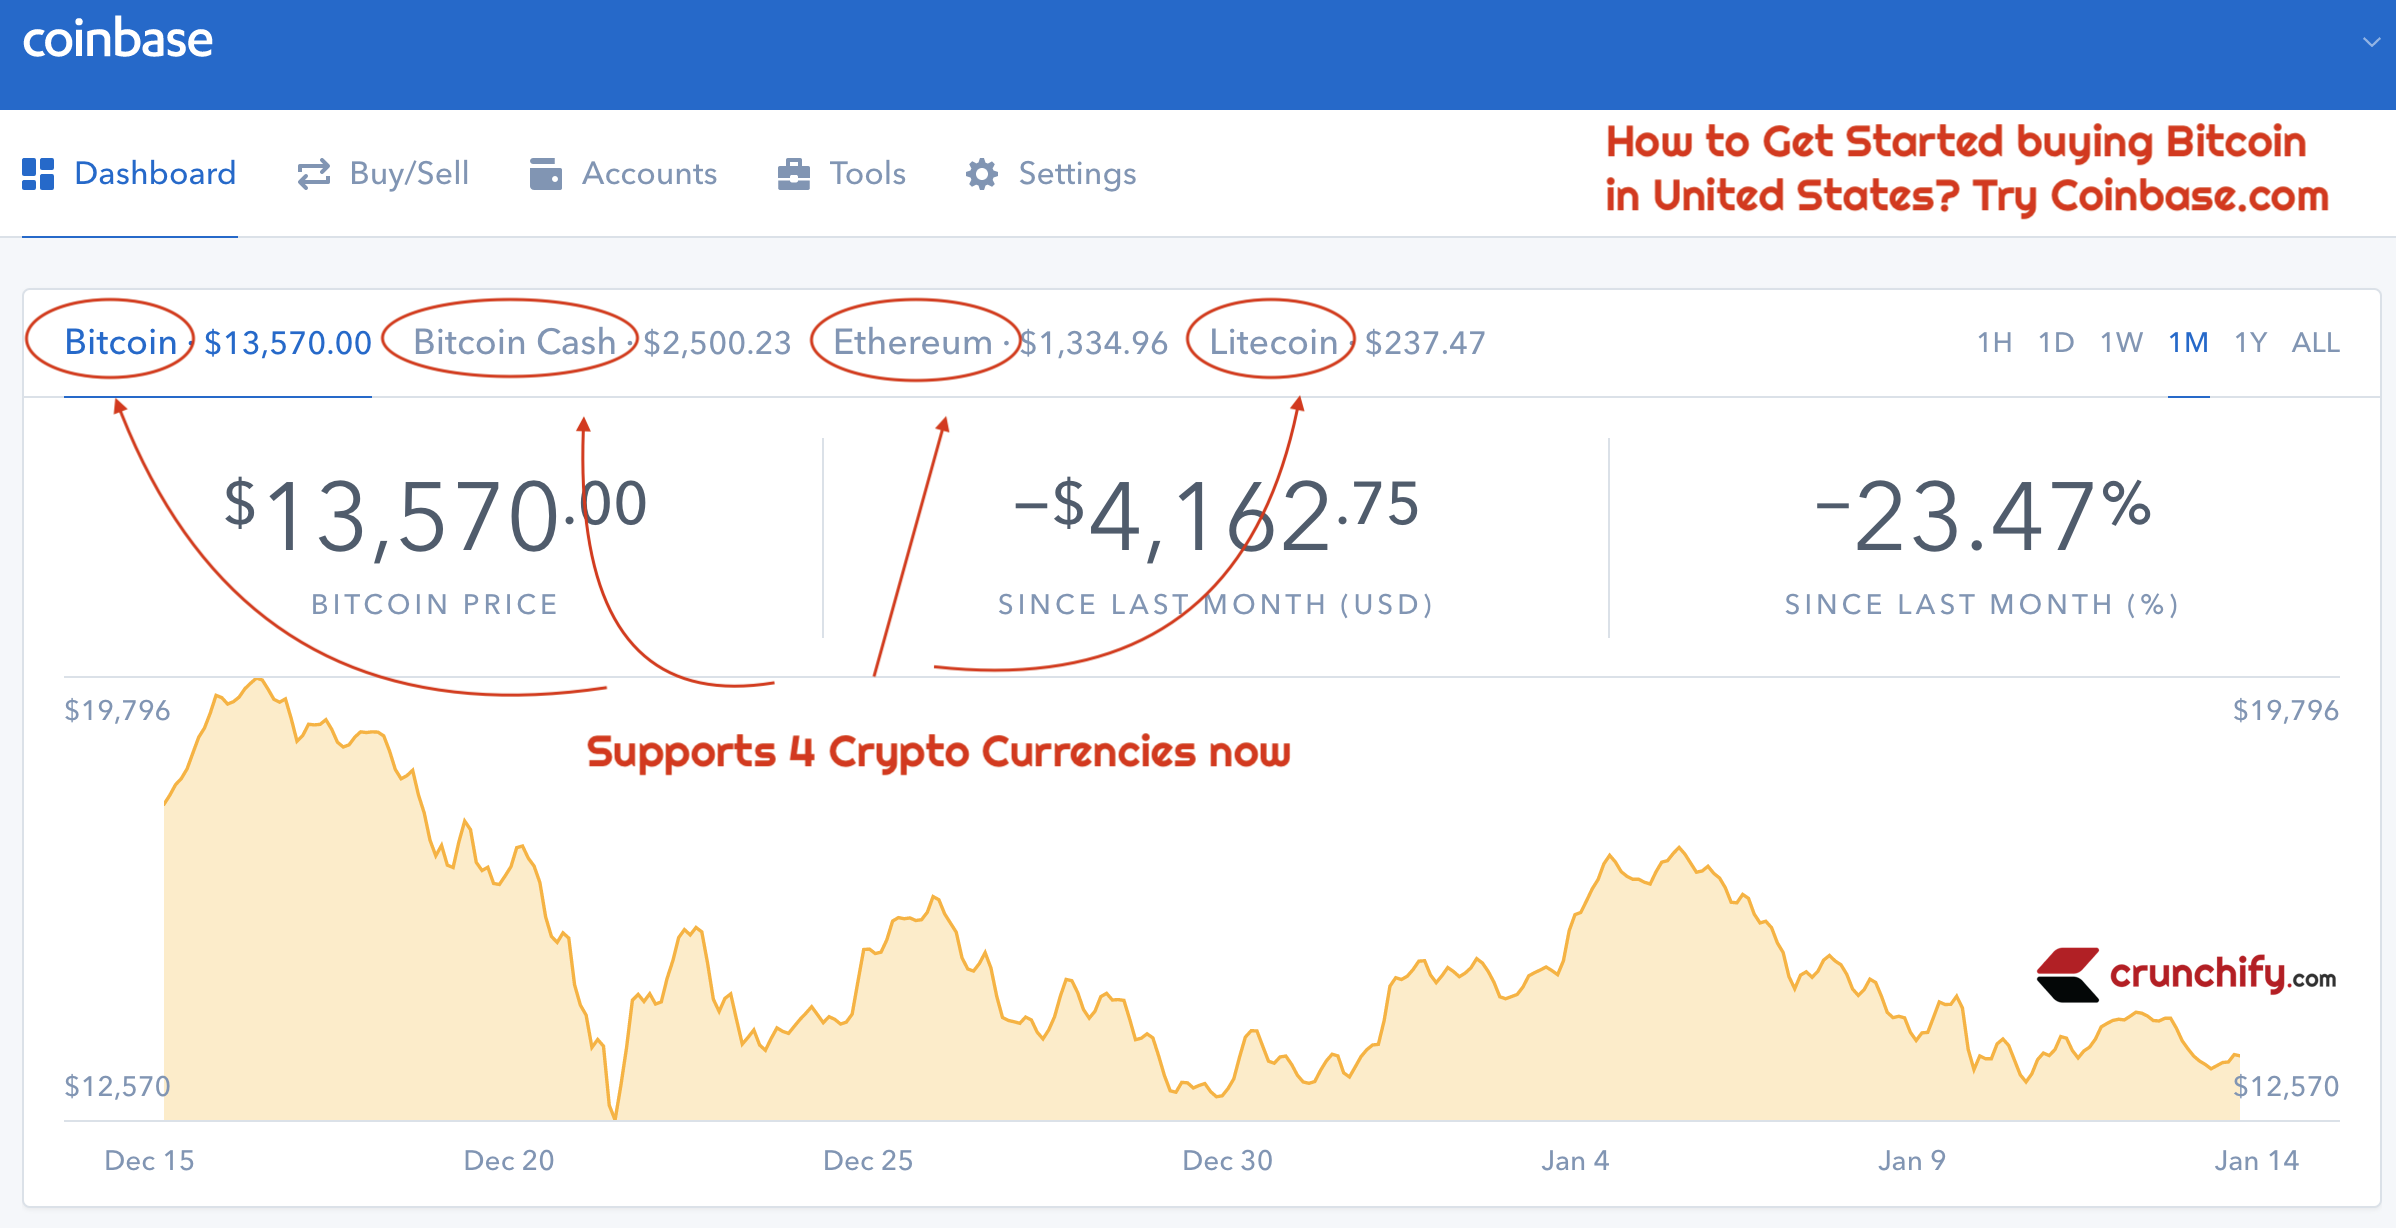 How to Get Started buying Bitcoin in United States? Try Coinbase.com